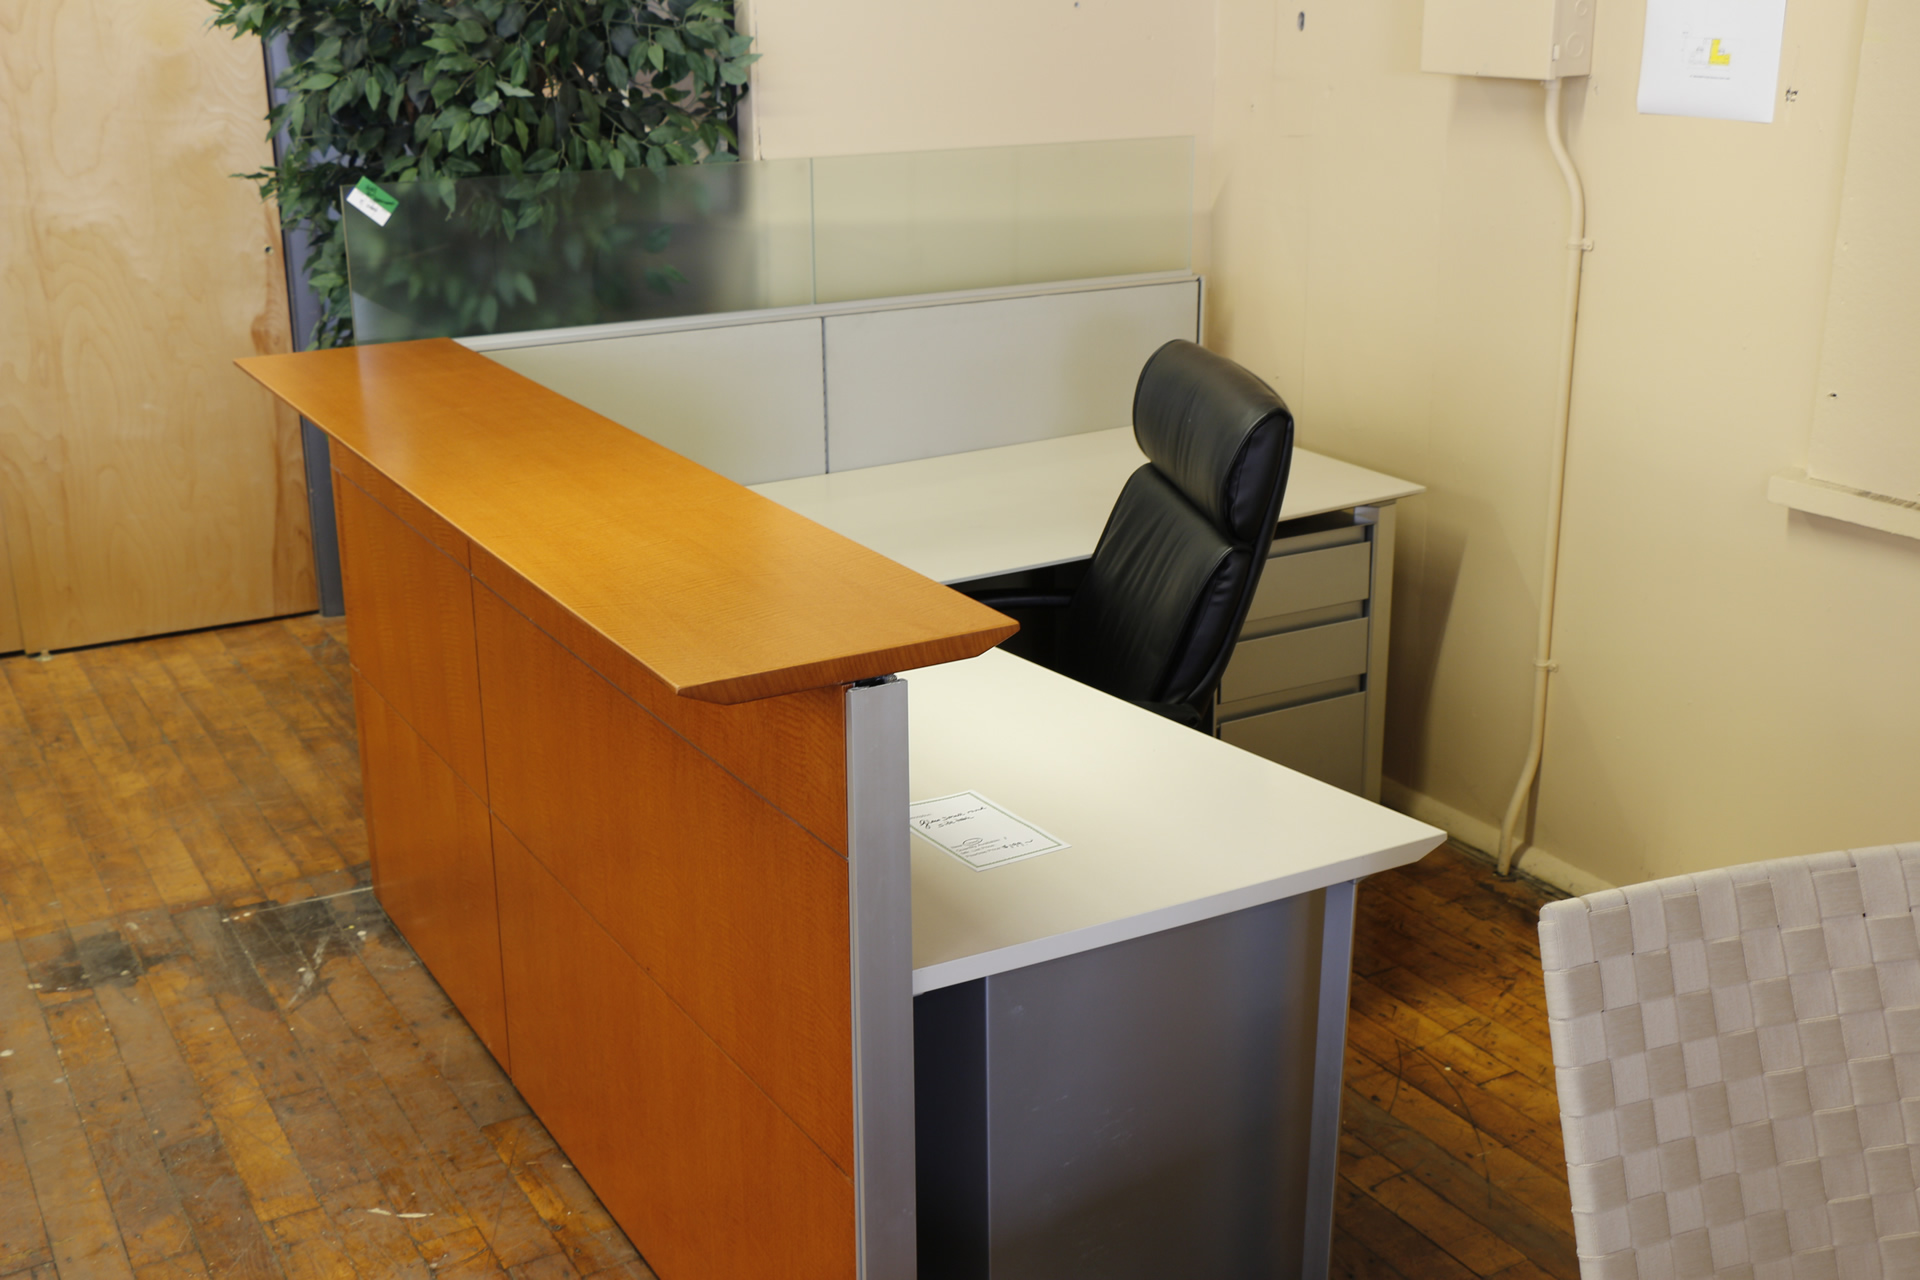 peartreeofficefurniture_peartreeofficefurniture_mg_4195.jpg